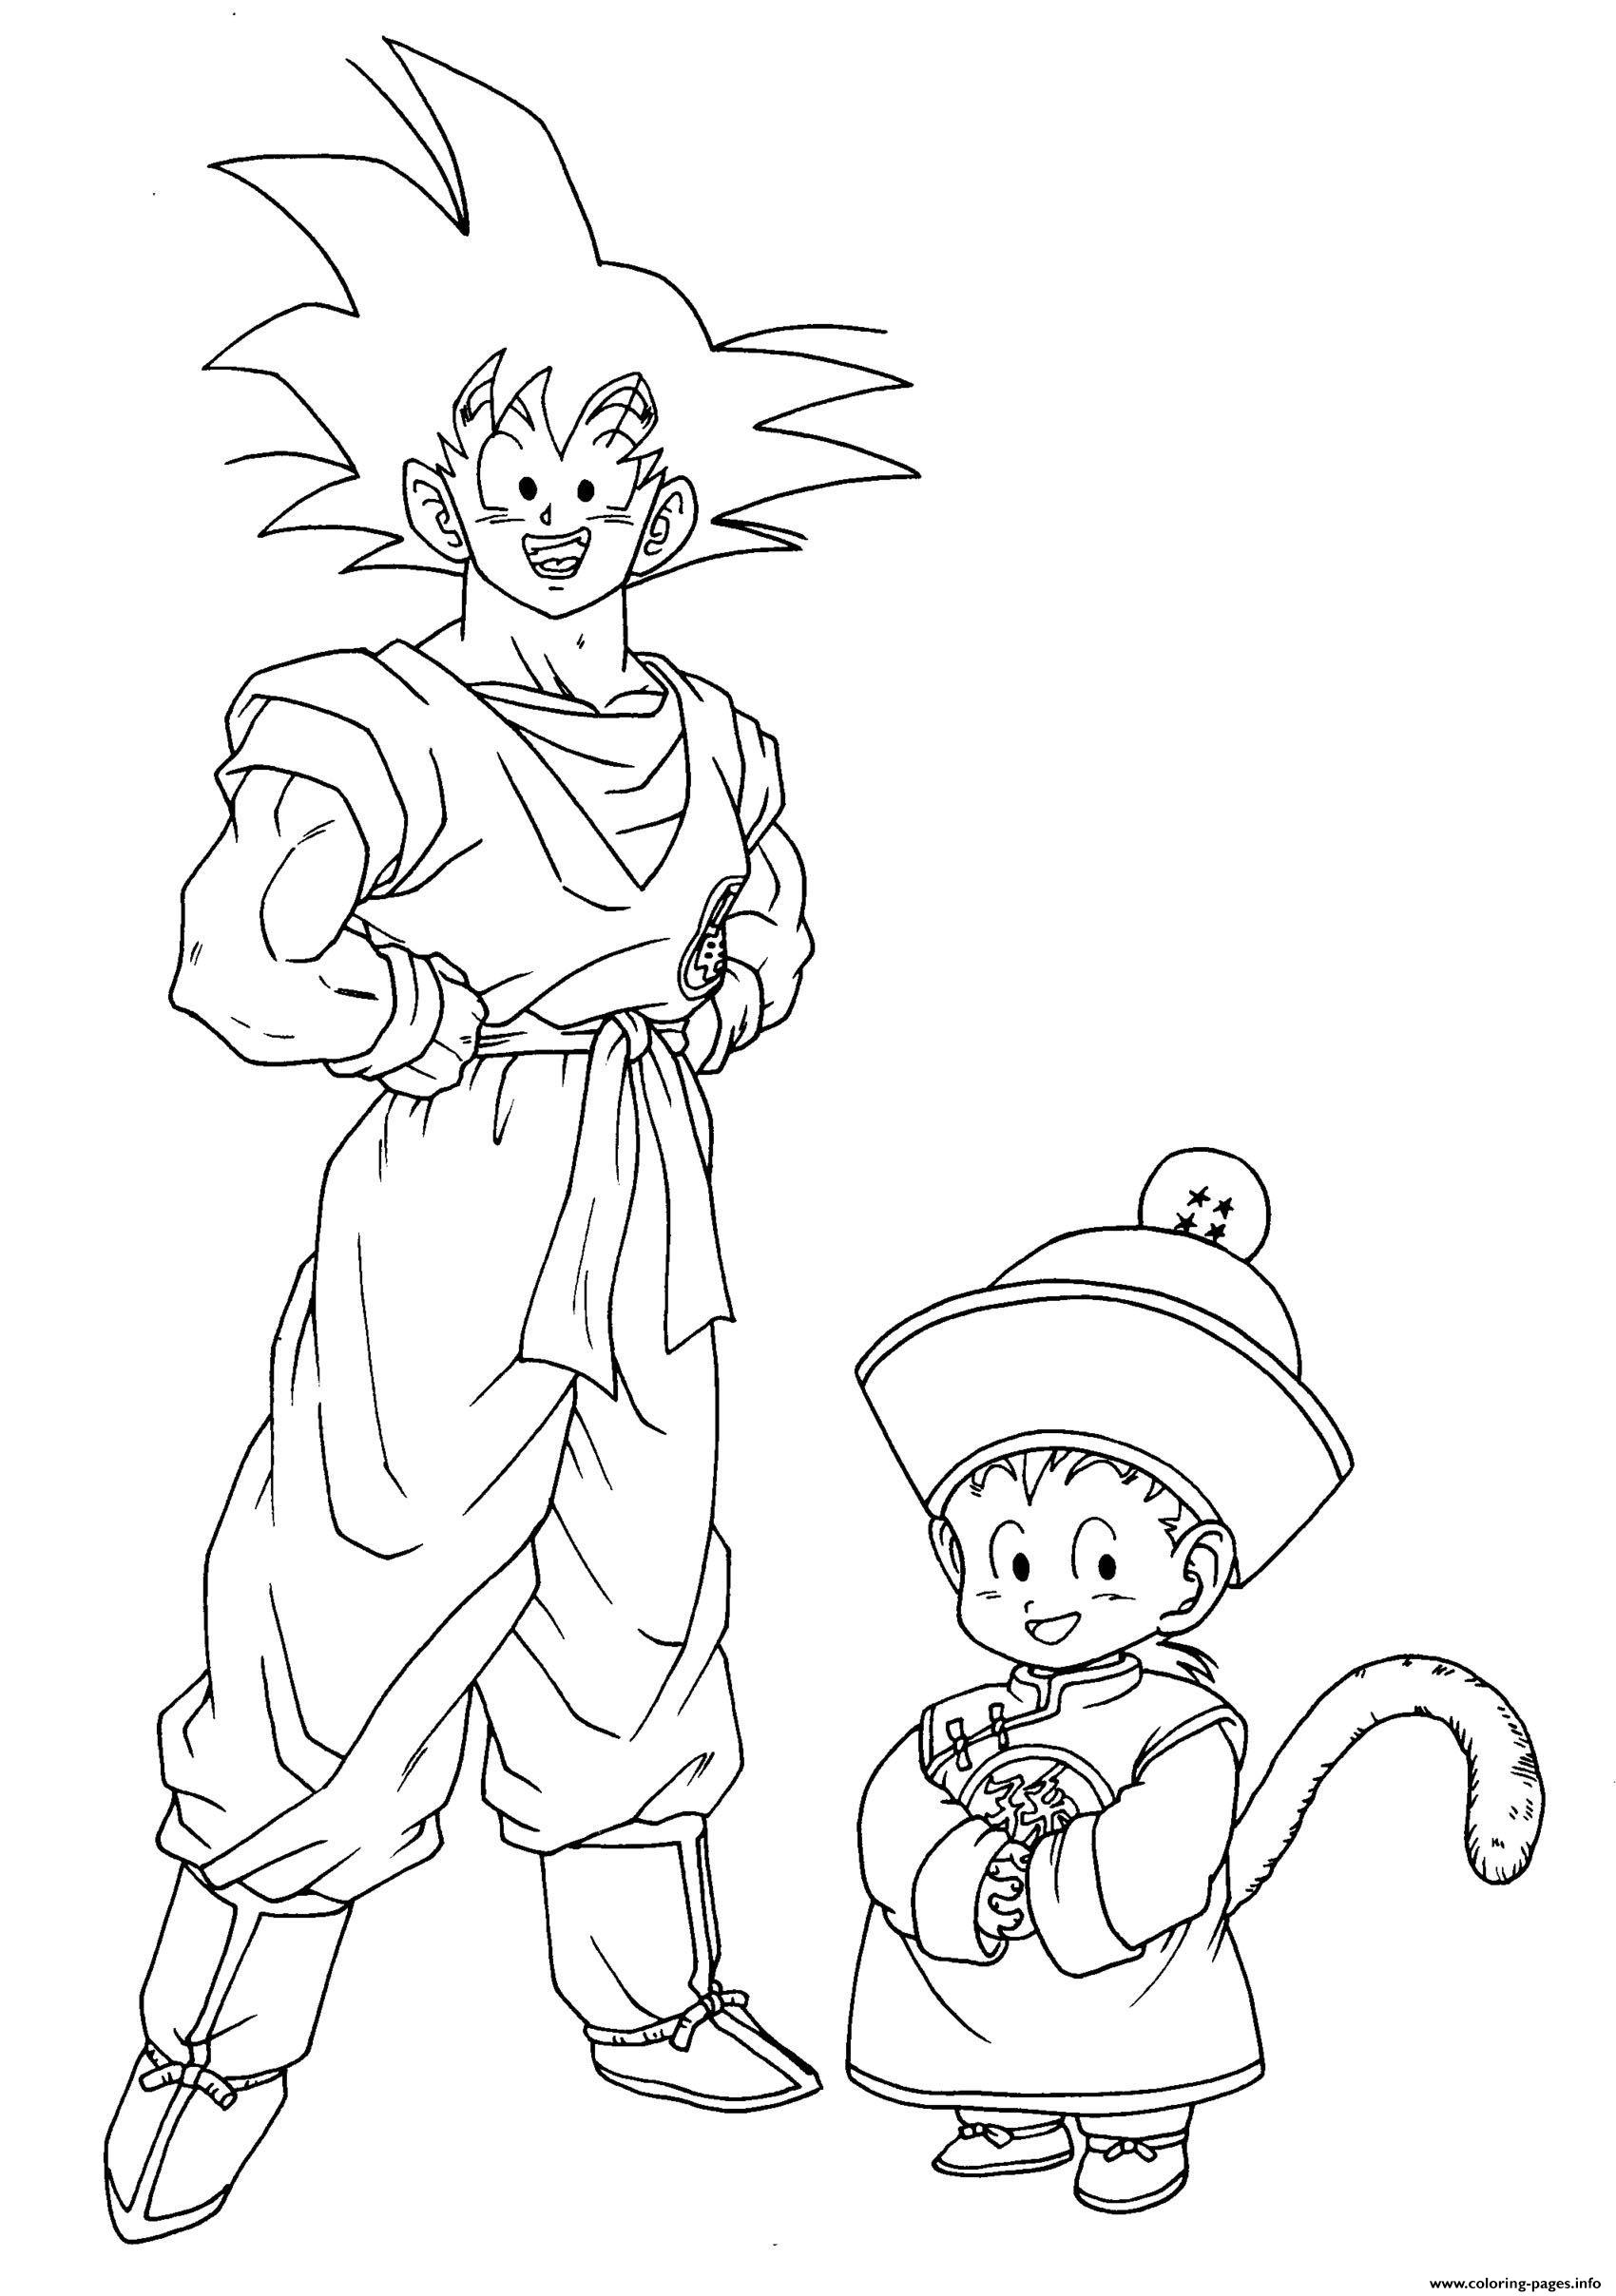 Anime Manga Dragon Ball Z Coloring Pages Printable